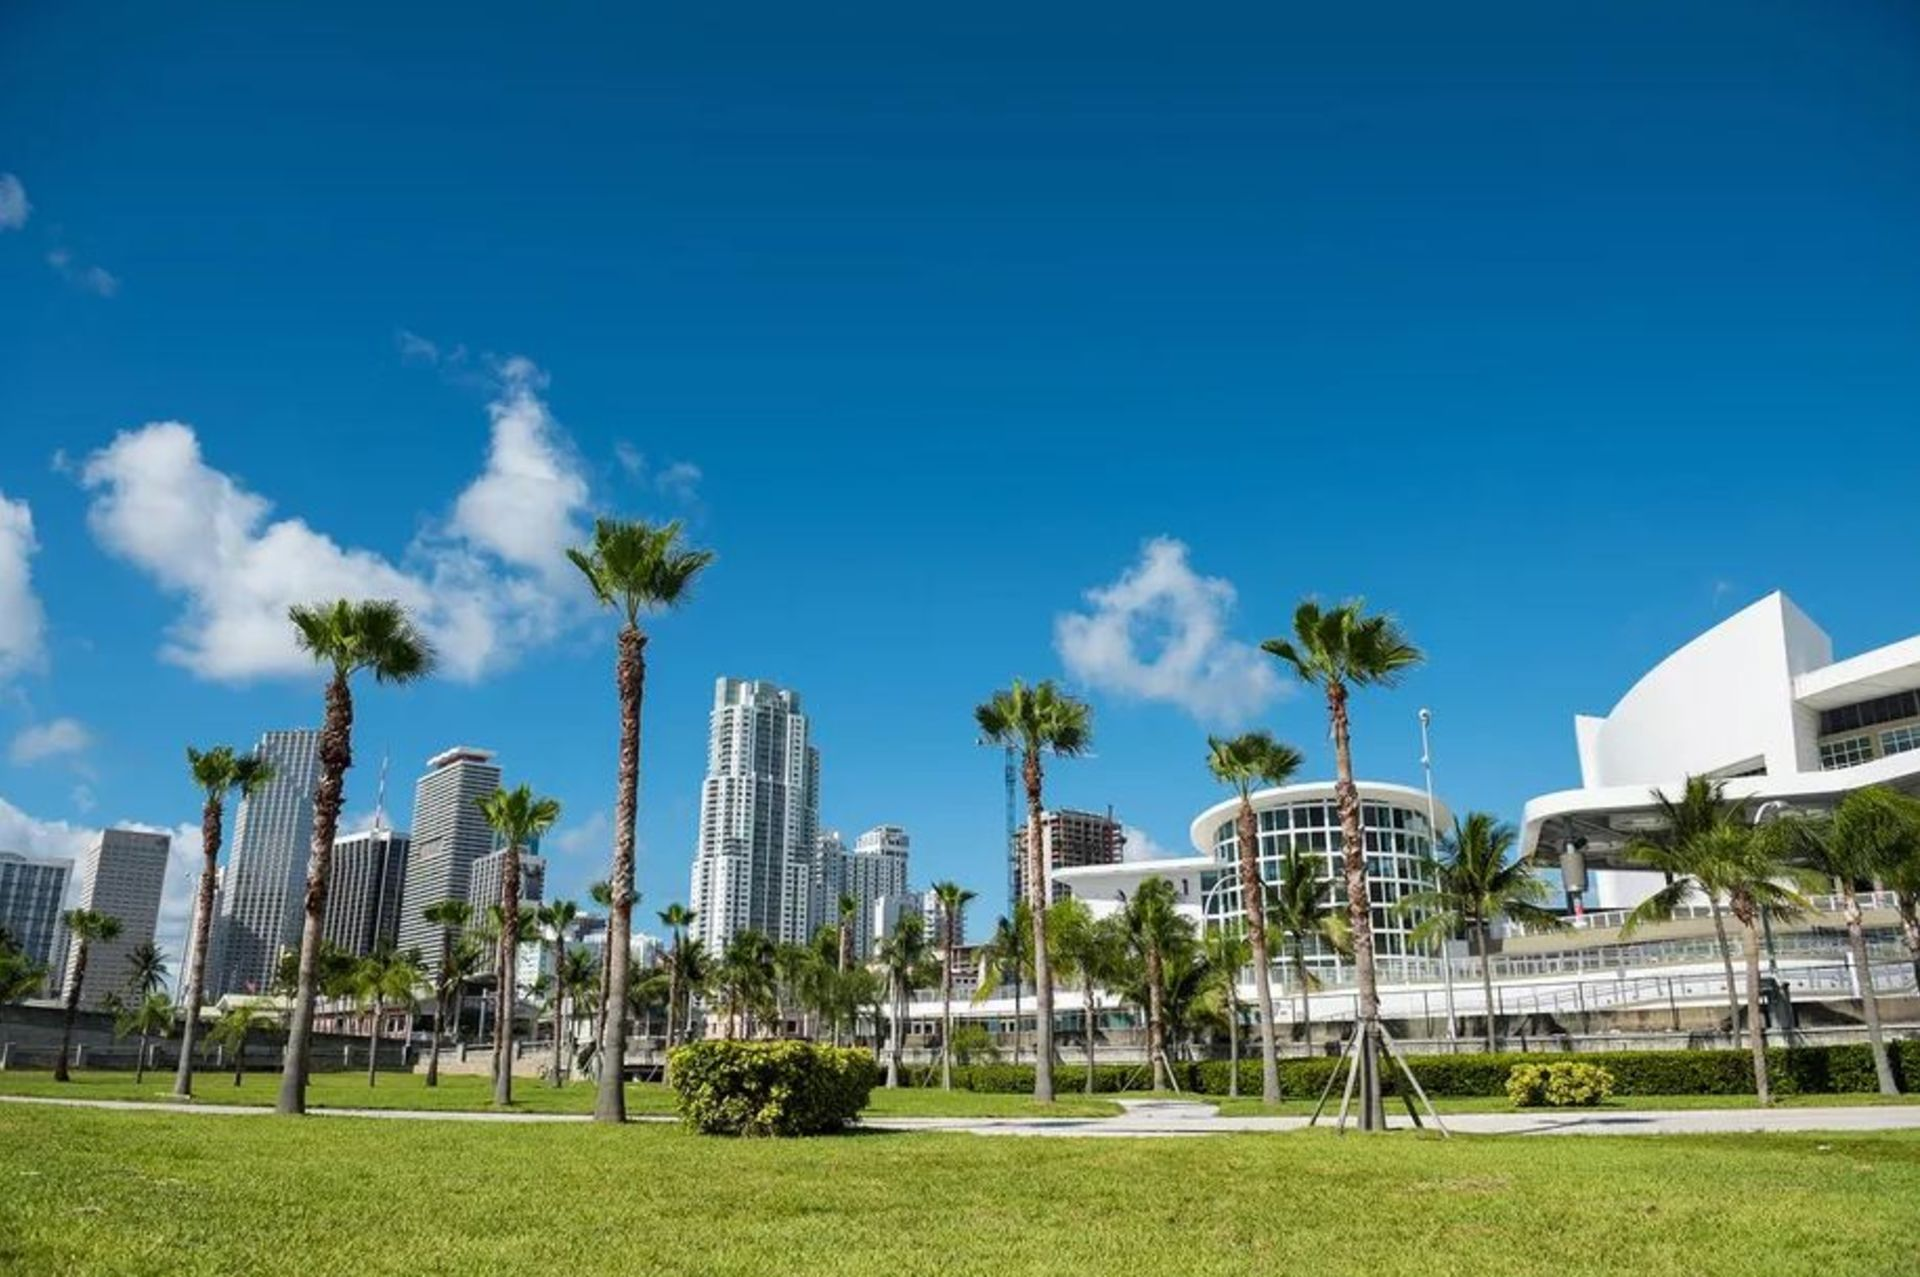 Downtown Miami finally gets its park next to American Airlines Arena